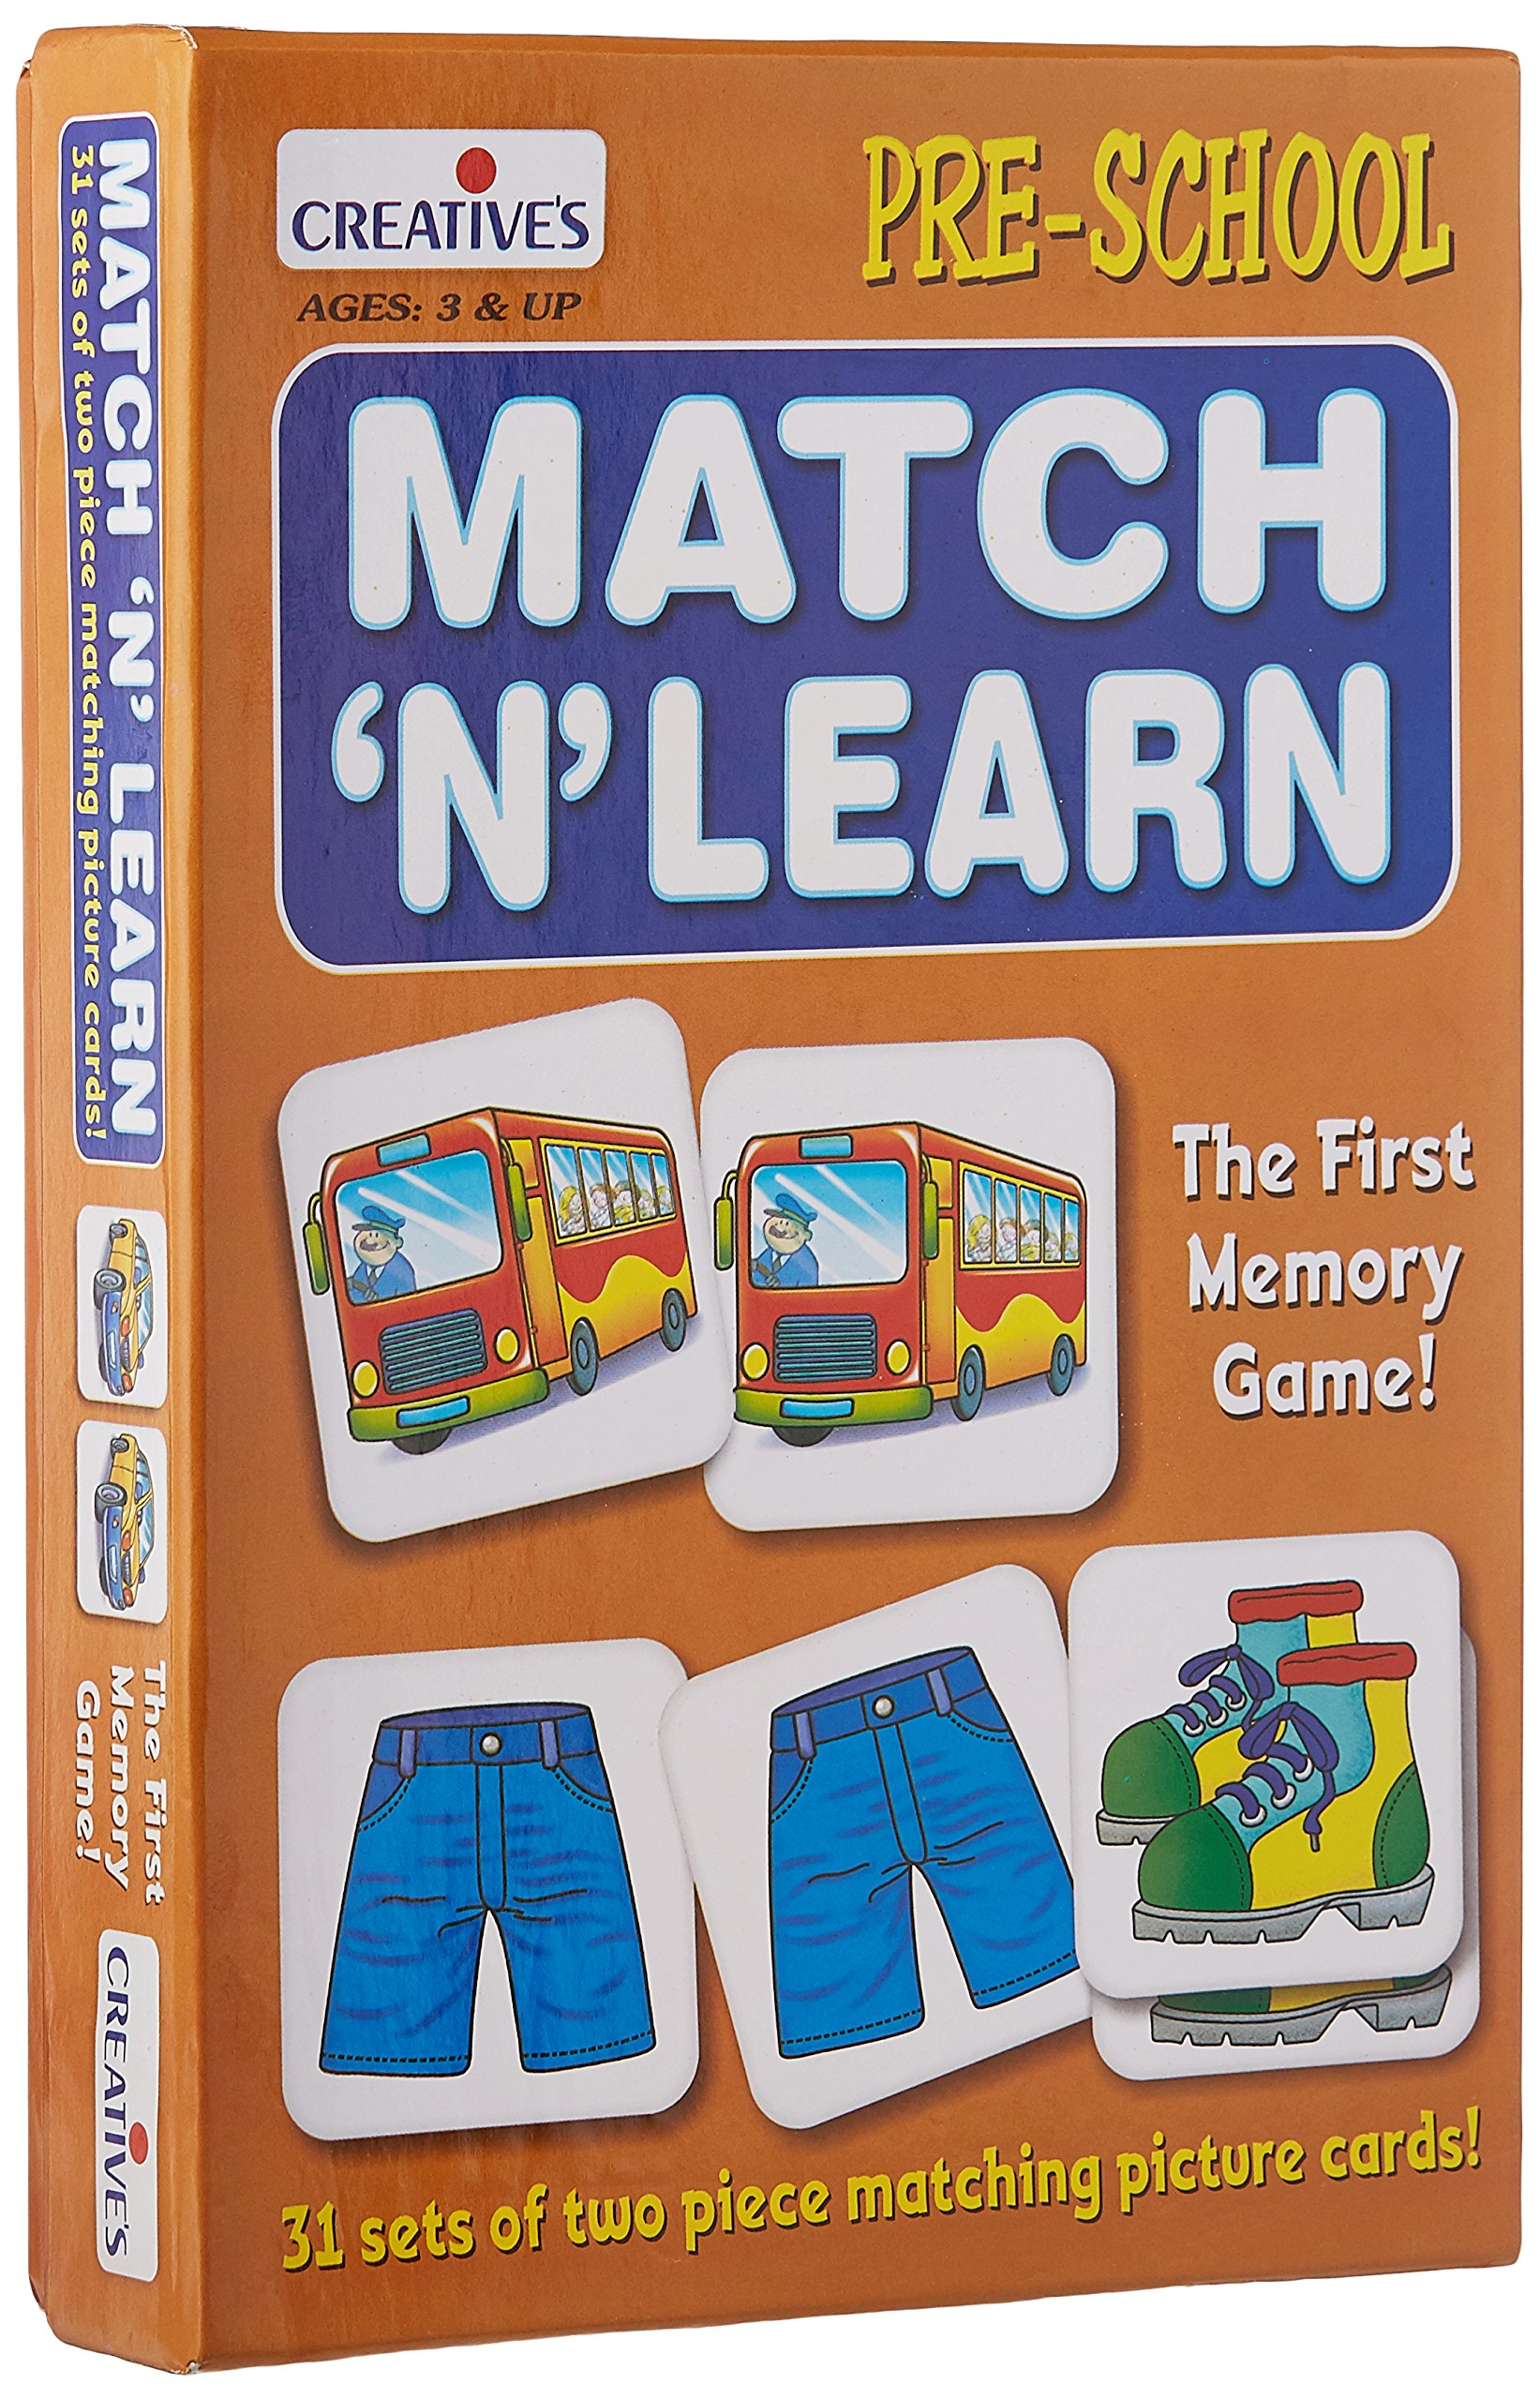 Creative's Match N Learn Card Game (Multi-Color, 62 Pieces) product image